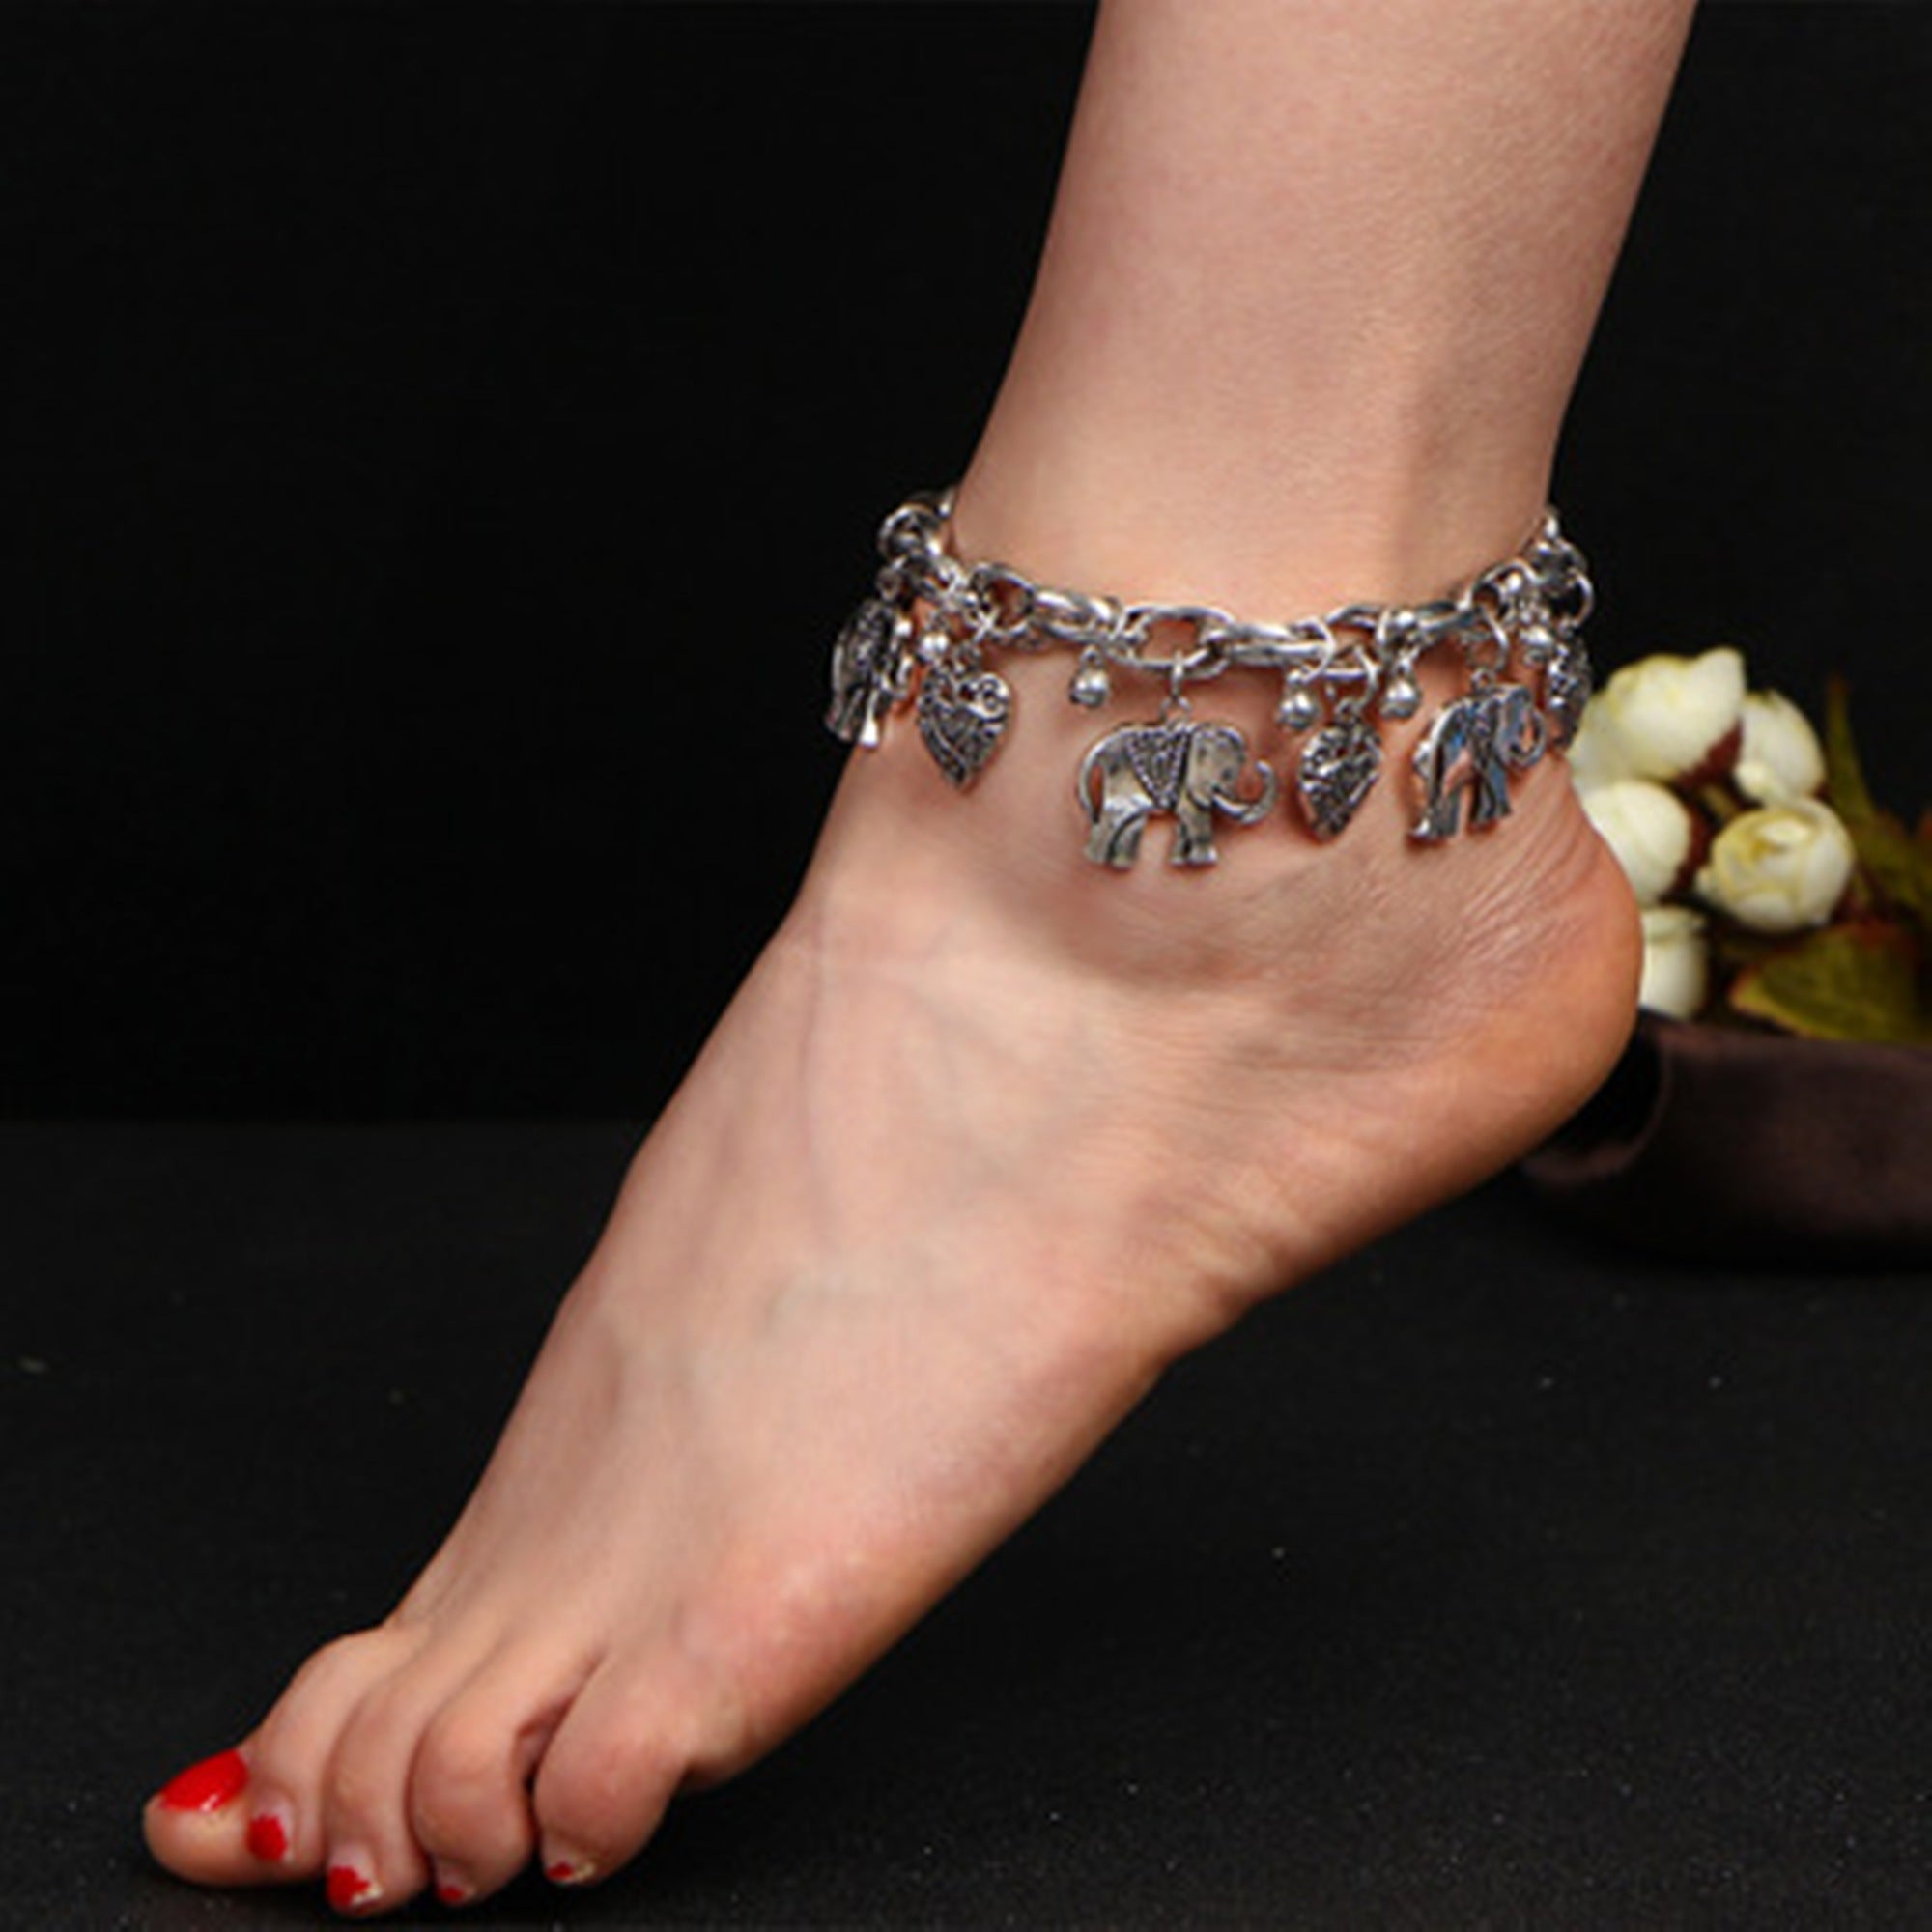 where detail women i our bride for anklet partners crochet sandals piece can bracelets skyvan product ankle bracelet buy one